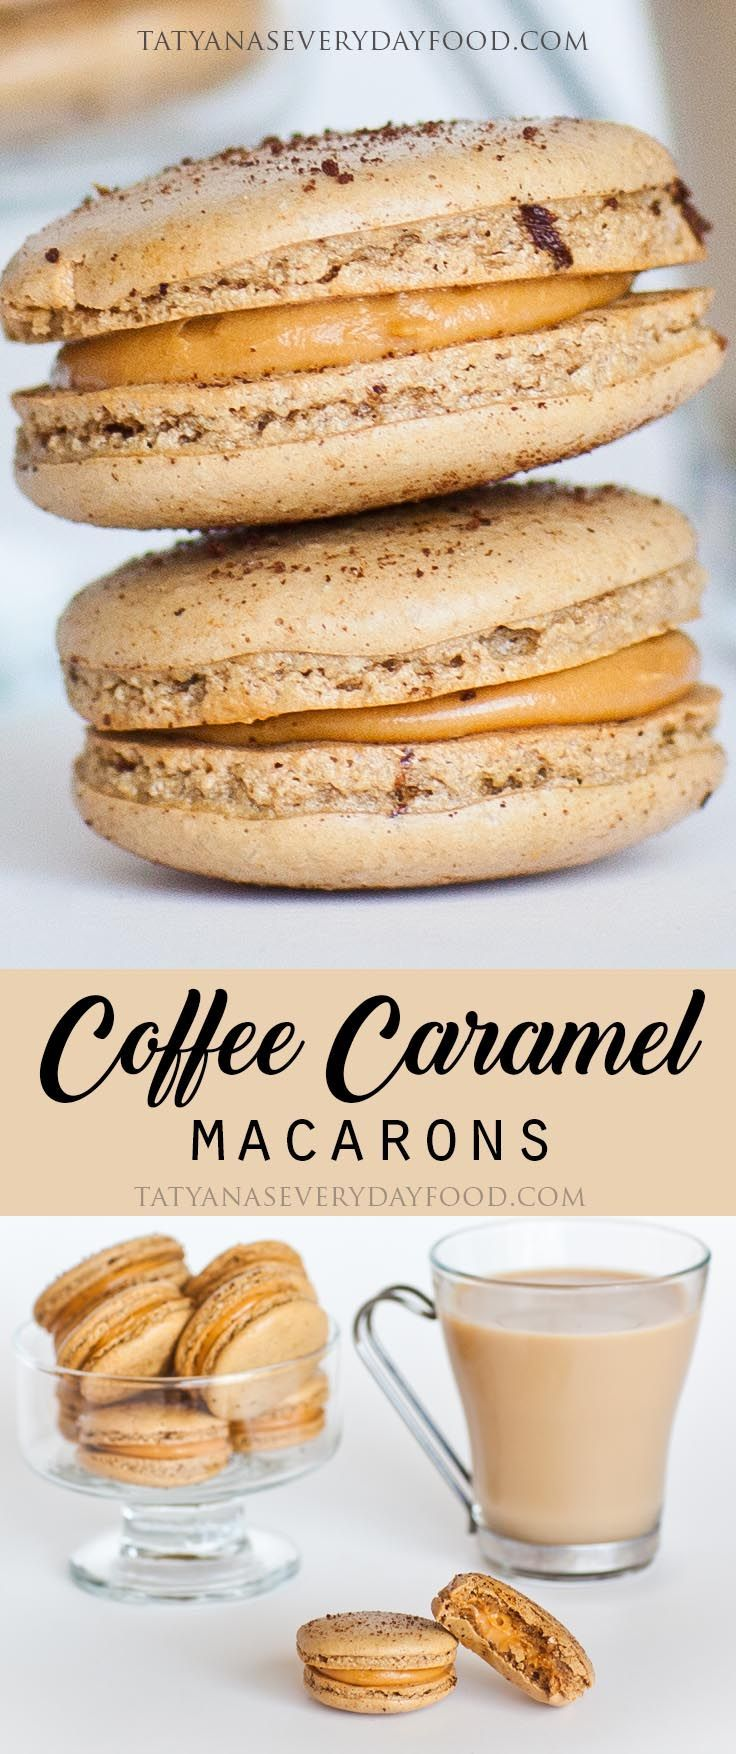 Coffee Macarons with Caramel Filling   - Baked Goodies -